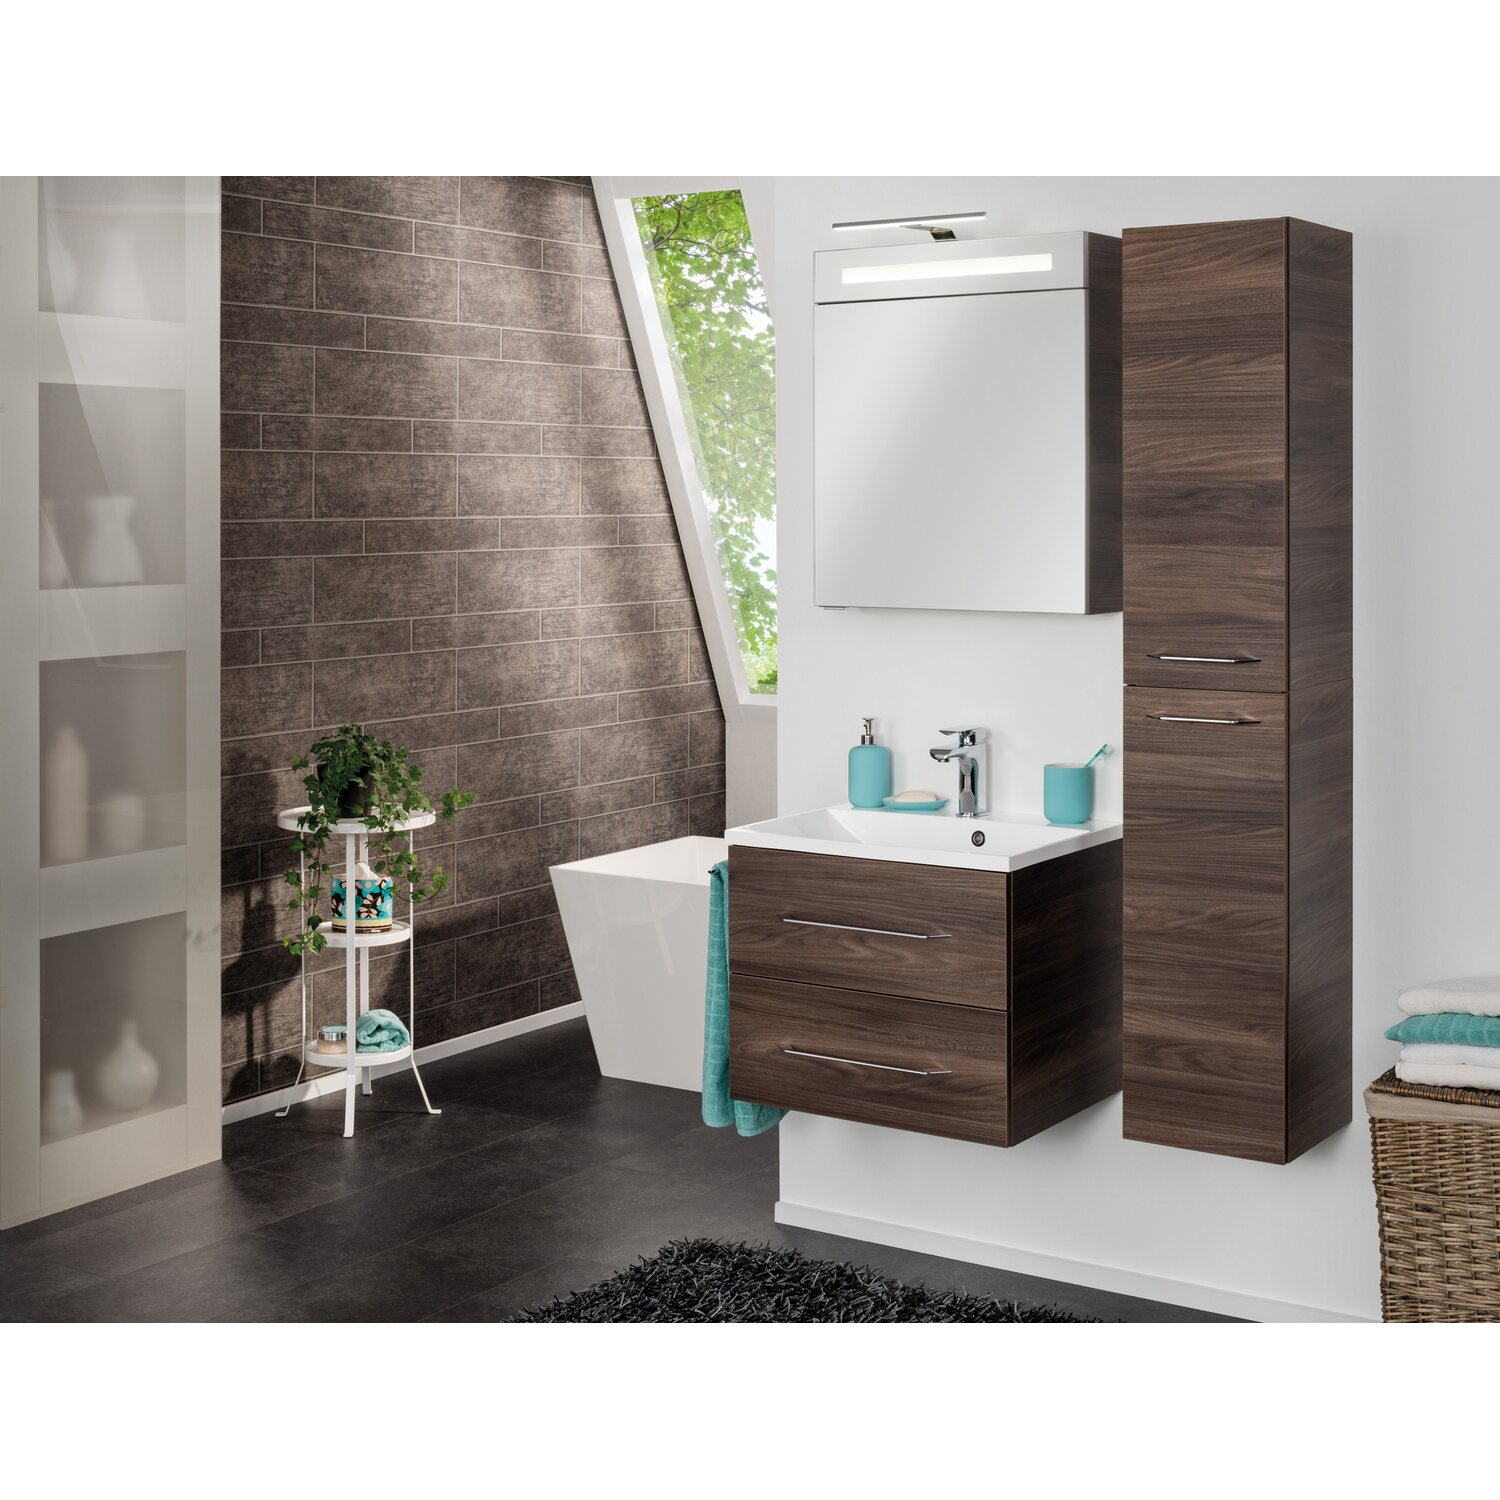 waschbecken klein sonstige preisvergleiche erfahrungsberichte und kauf bei nextag. Black Bedroom Furniture Sets. Home Design Ideas